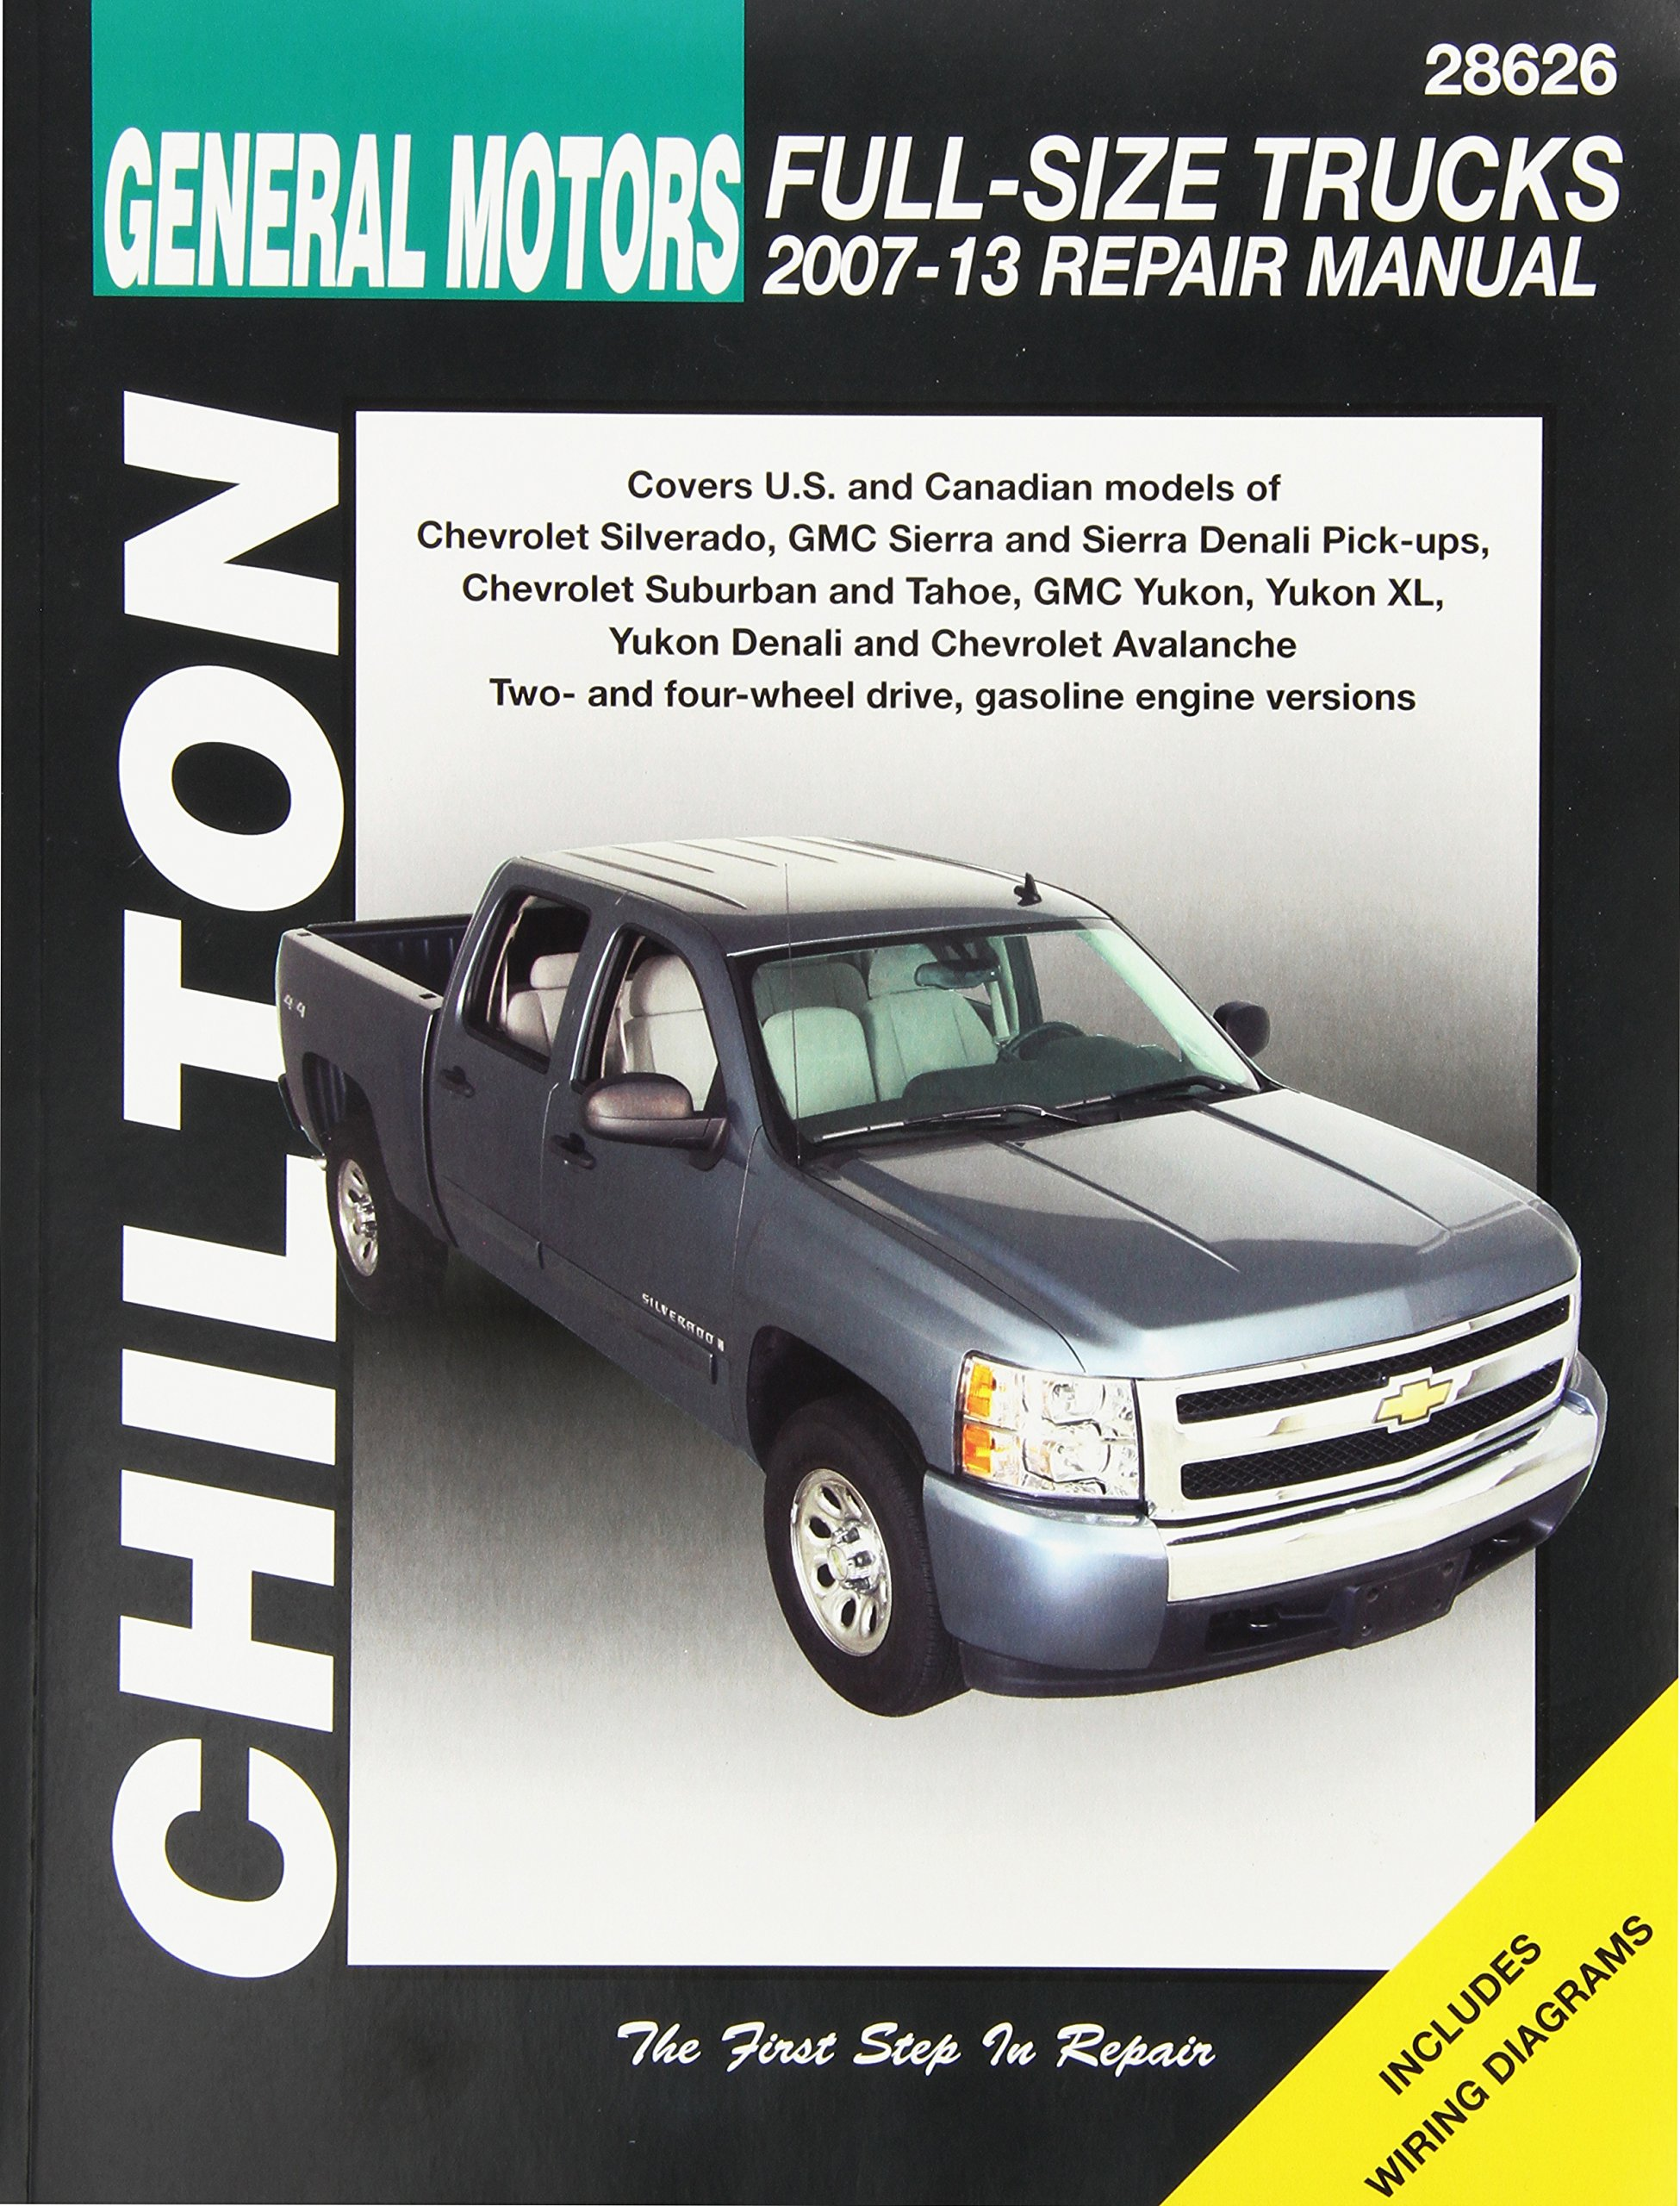 amazon com gm full size trucks chilton repair manual 2007 2012 rh amazon com Auto Repair Manuals PDF Auto Repair Manuals PDF